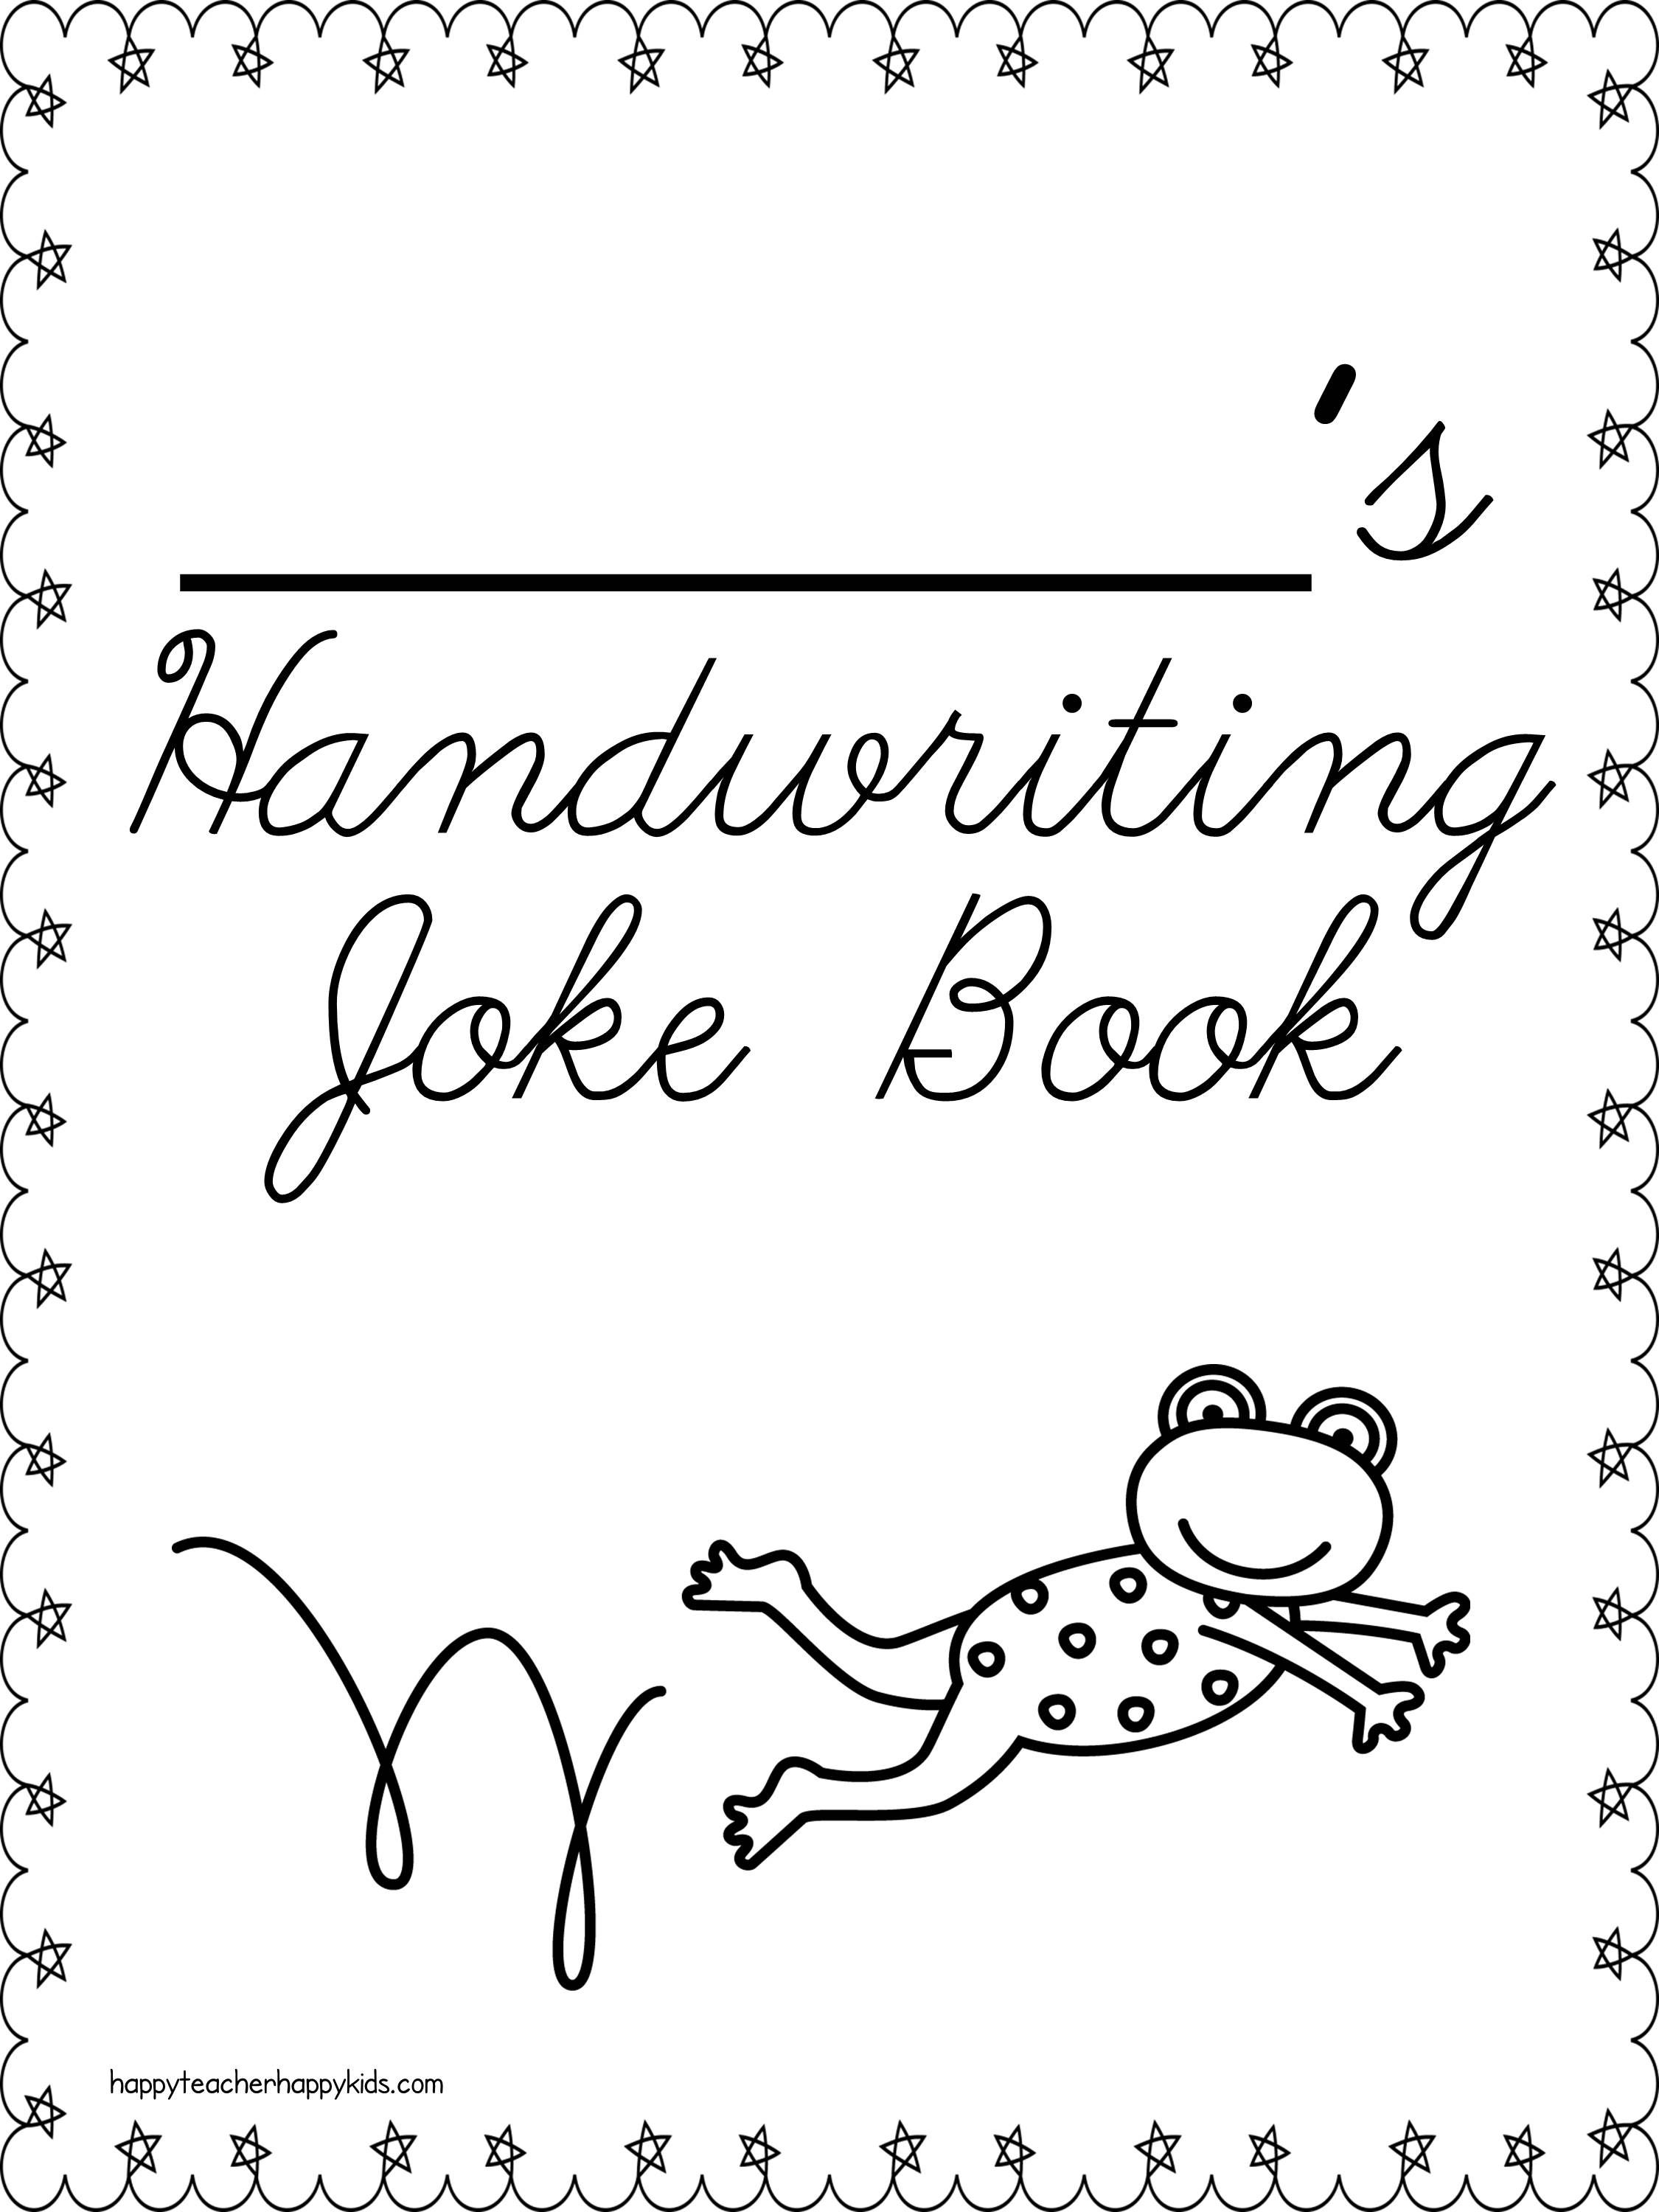 Cursive Handwriting Joke Book- check out the preview for a sampler ...